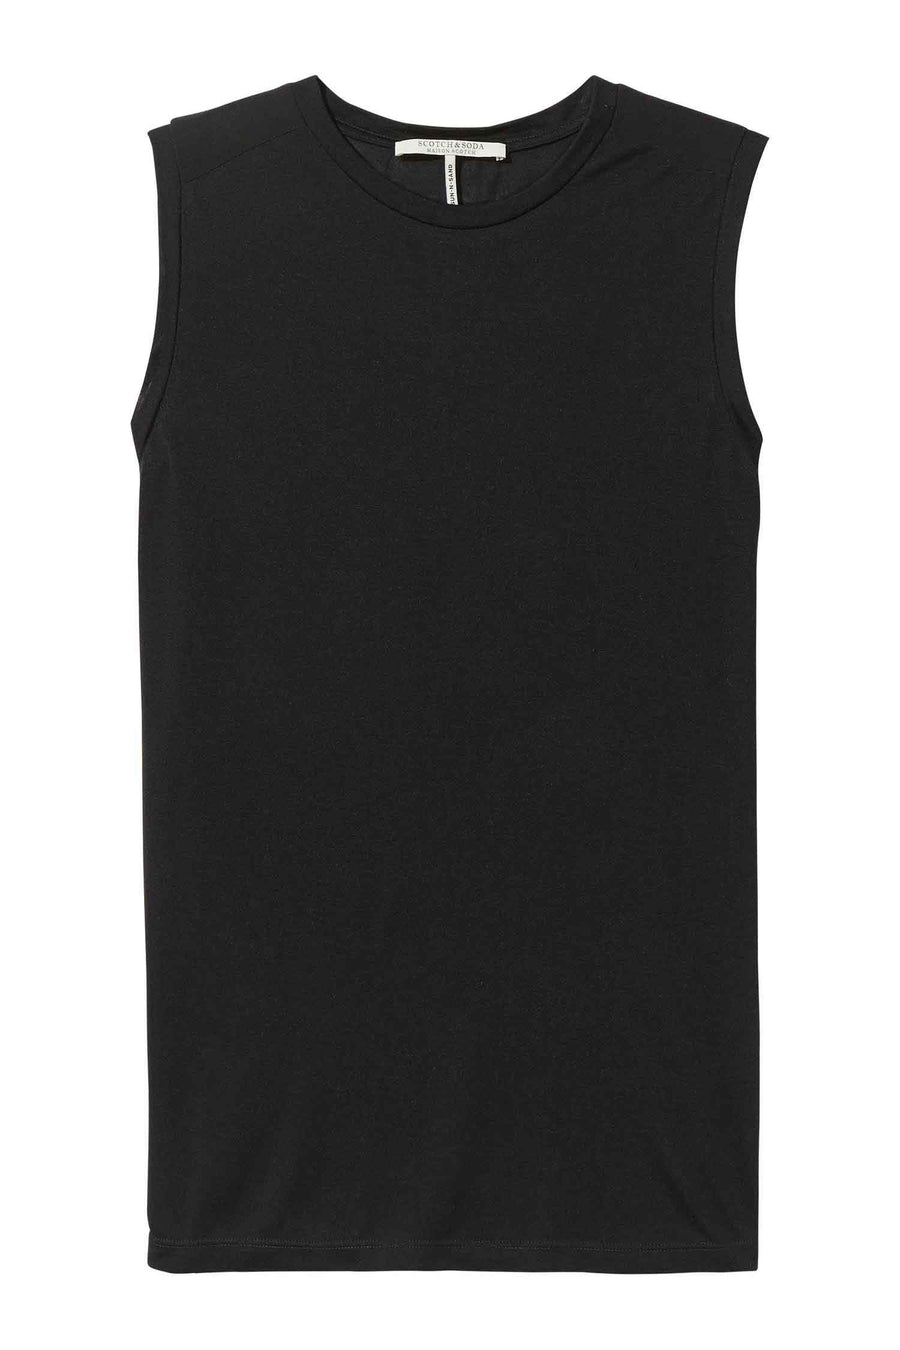 Shop Online Soft Jersey Top In Black by Maison Scotch  Frockaholics Tops